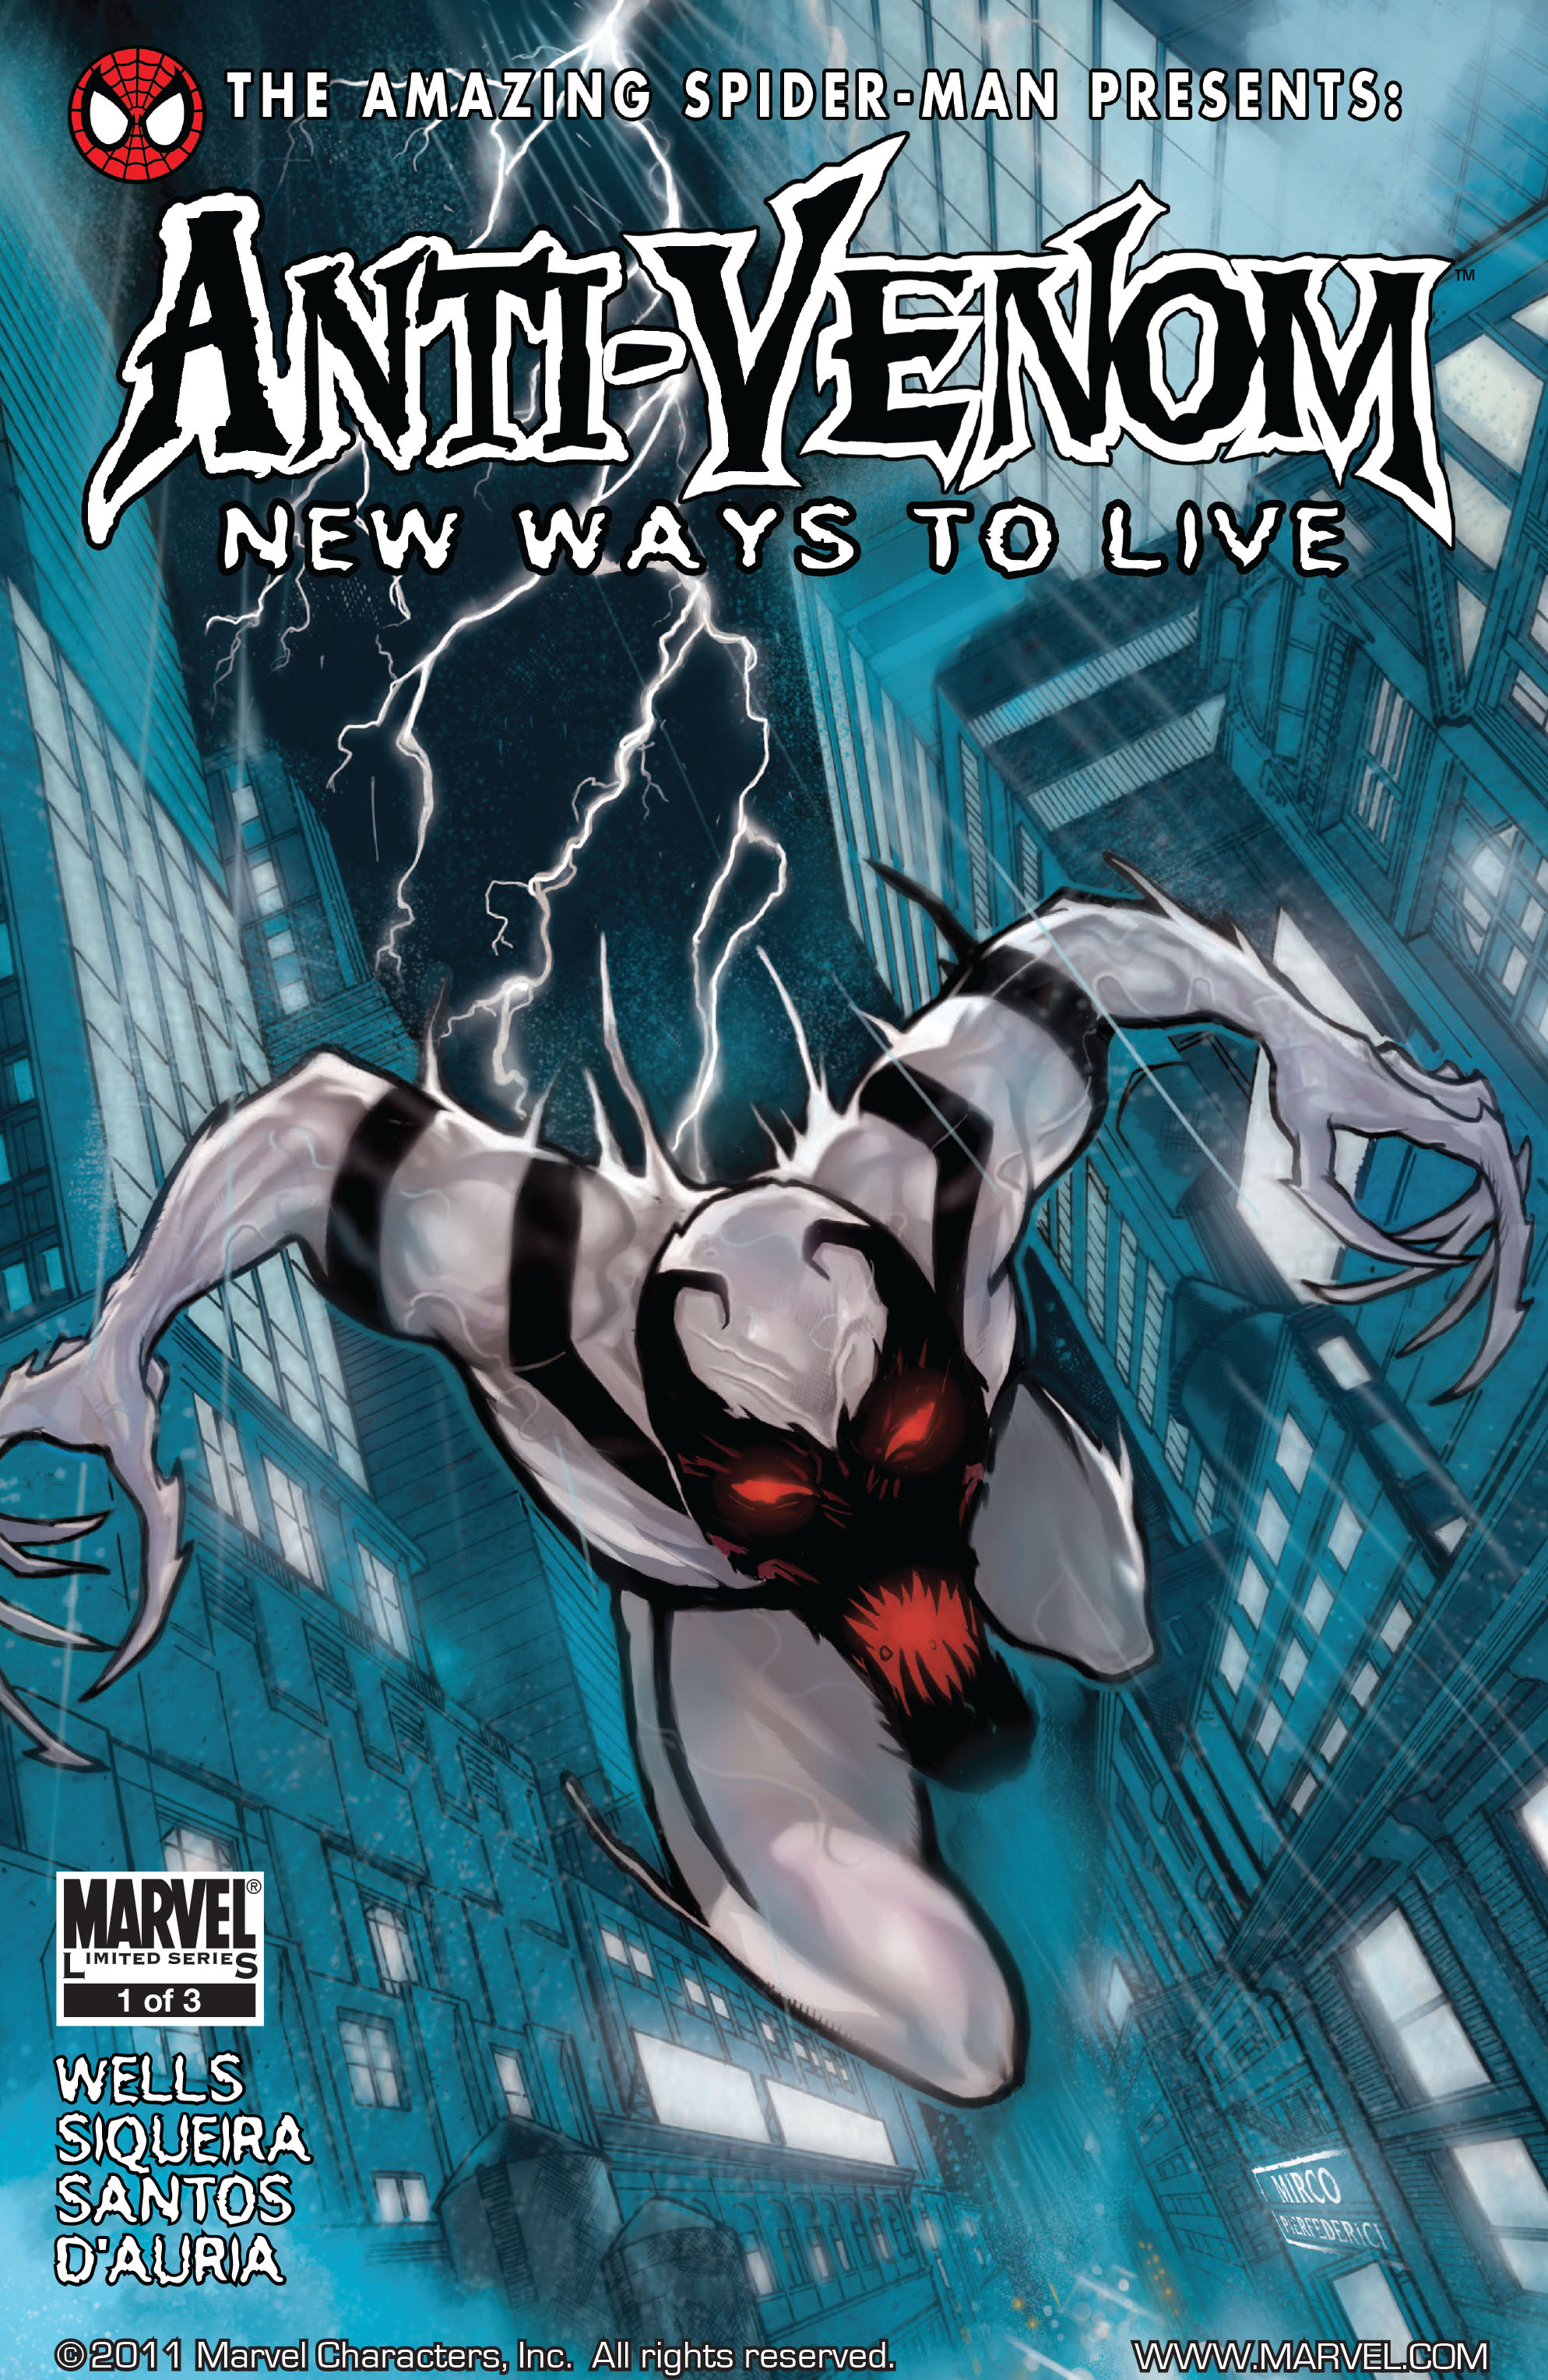 Amazing Spider-Man Presents: Anti-Venom - New Ways To Live 1 Page 1